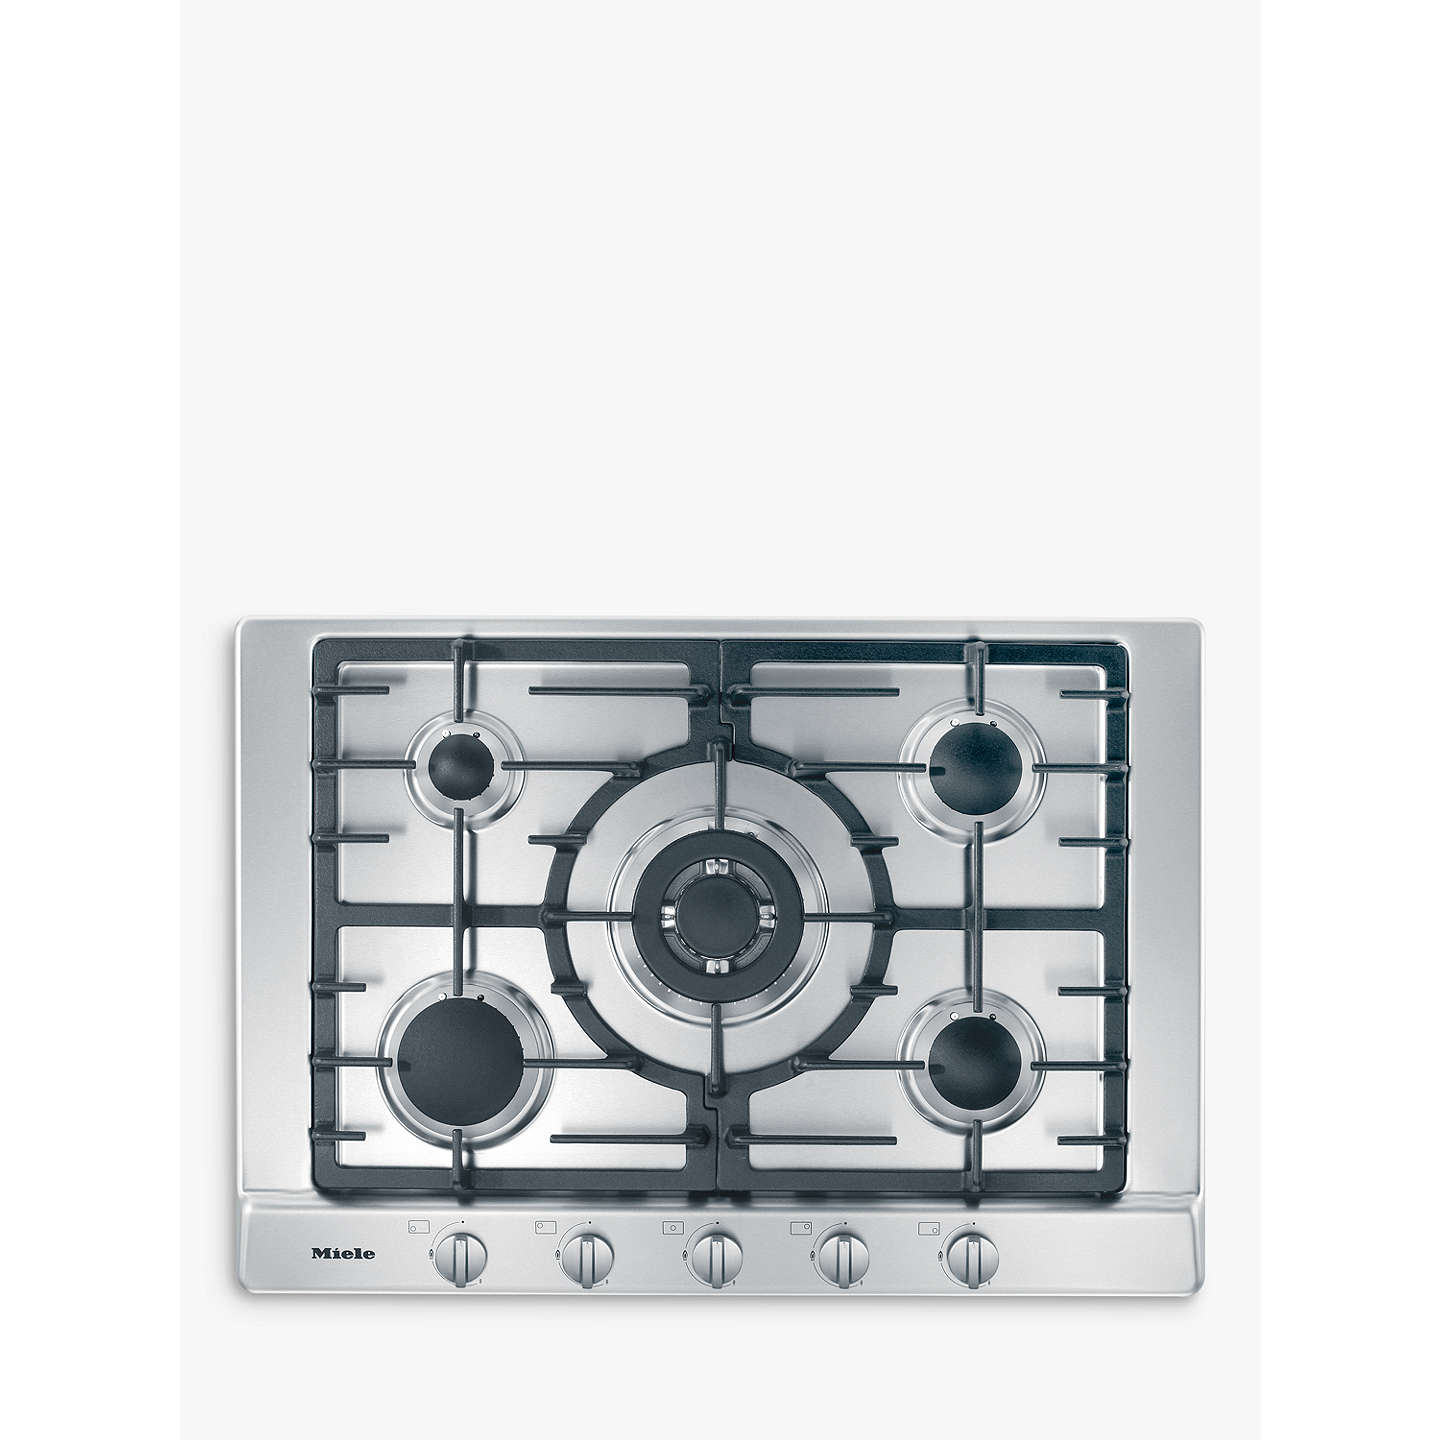 Miele KM2032 Gas Hob, Stainless Steel at John Lewis